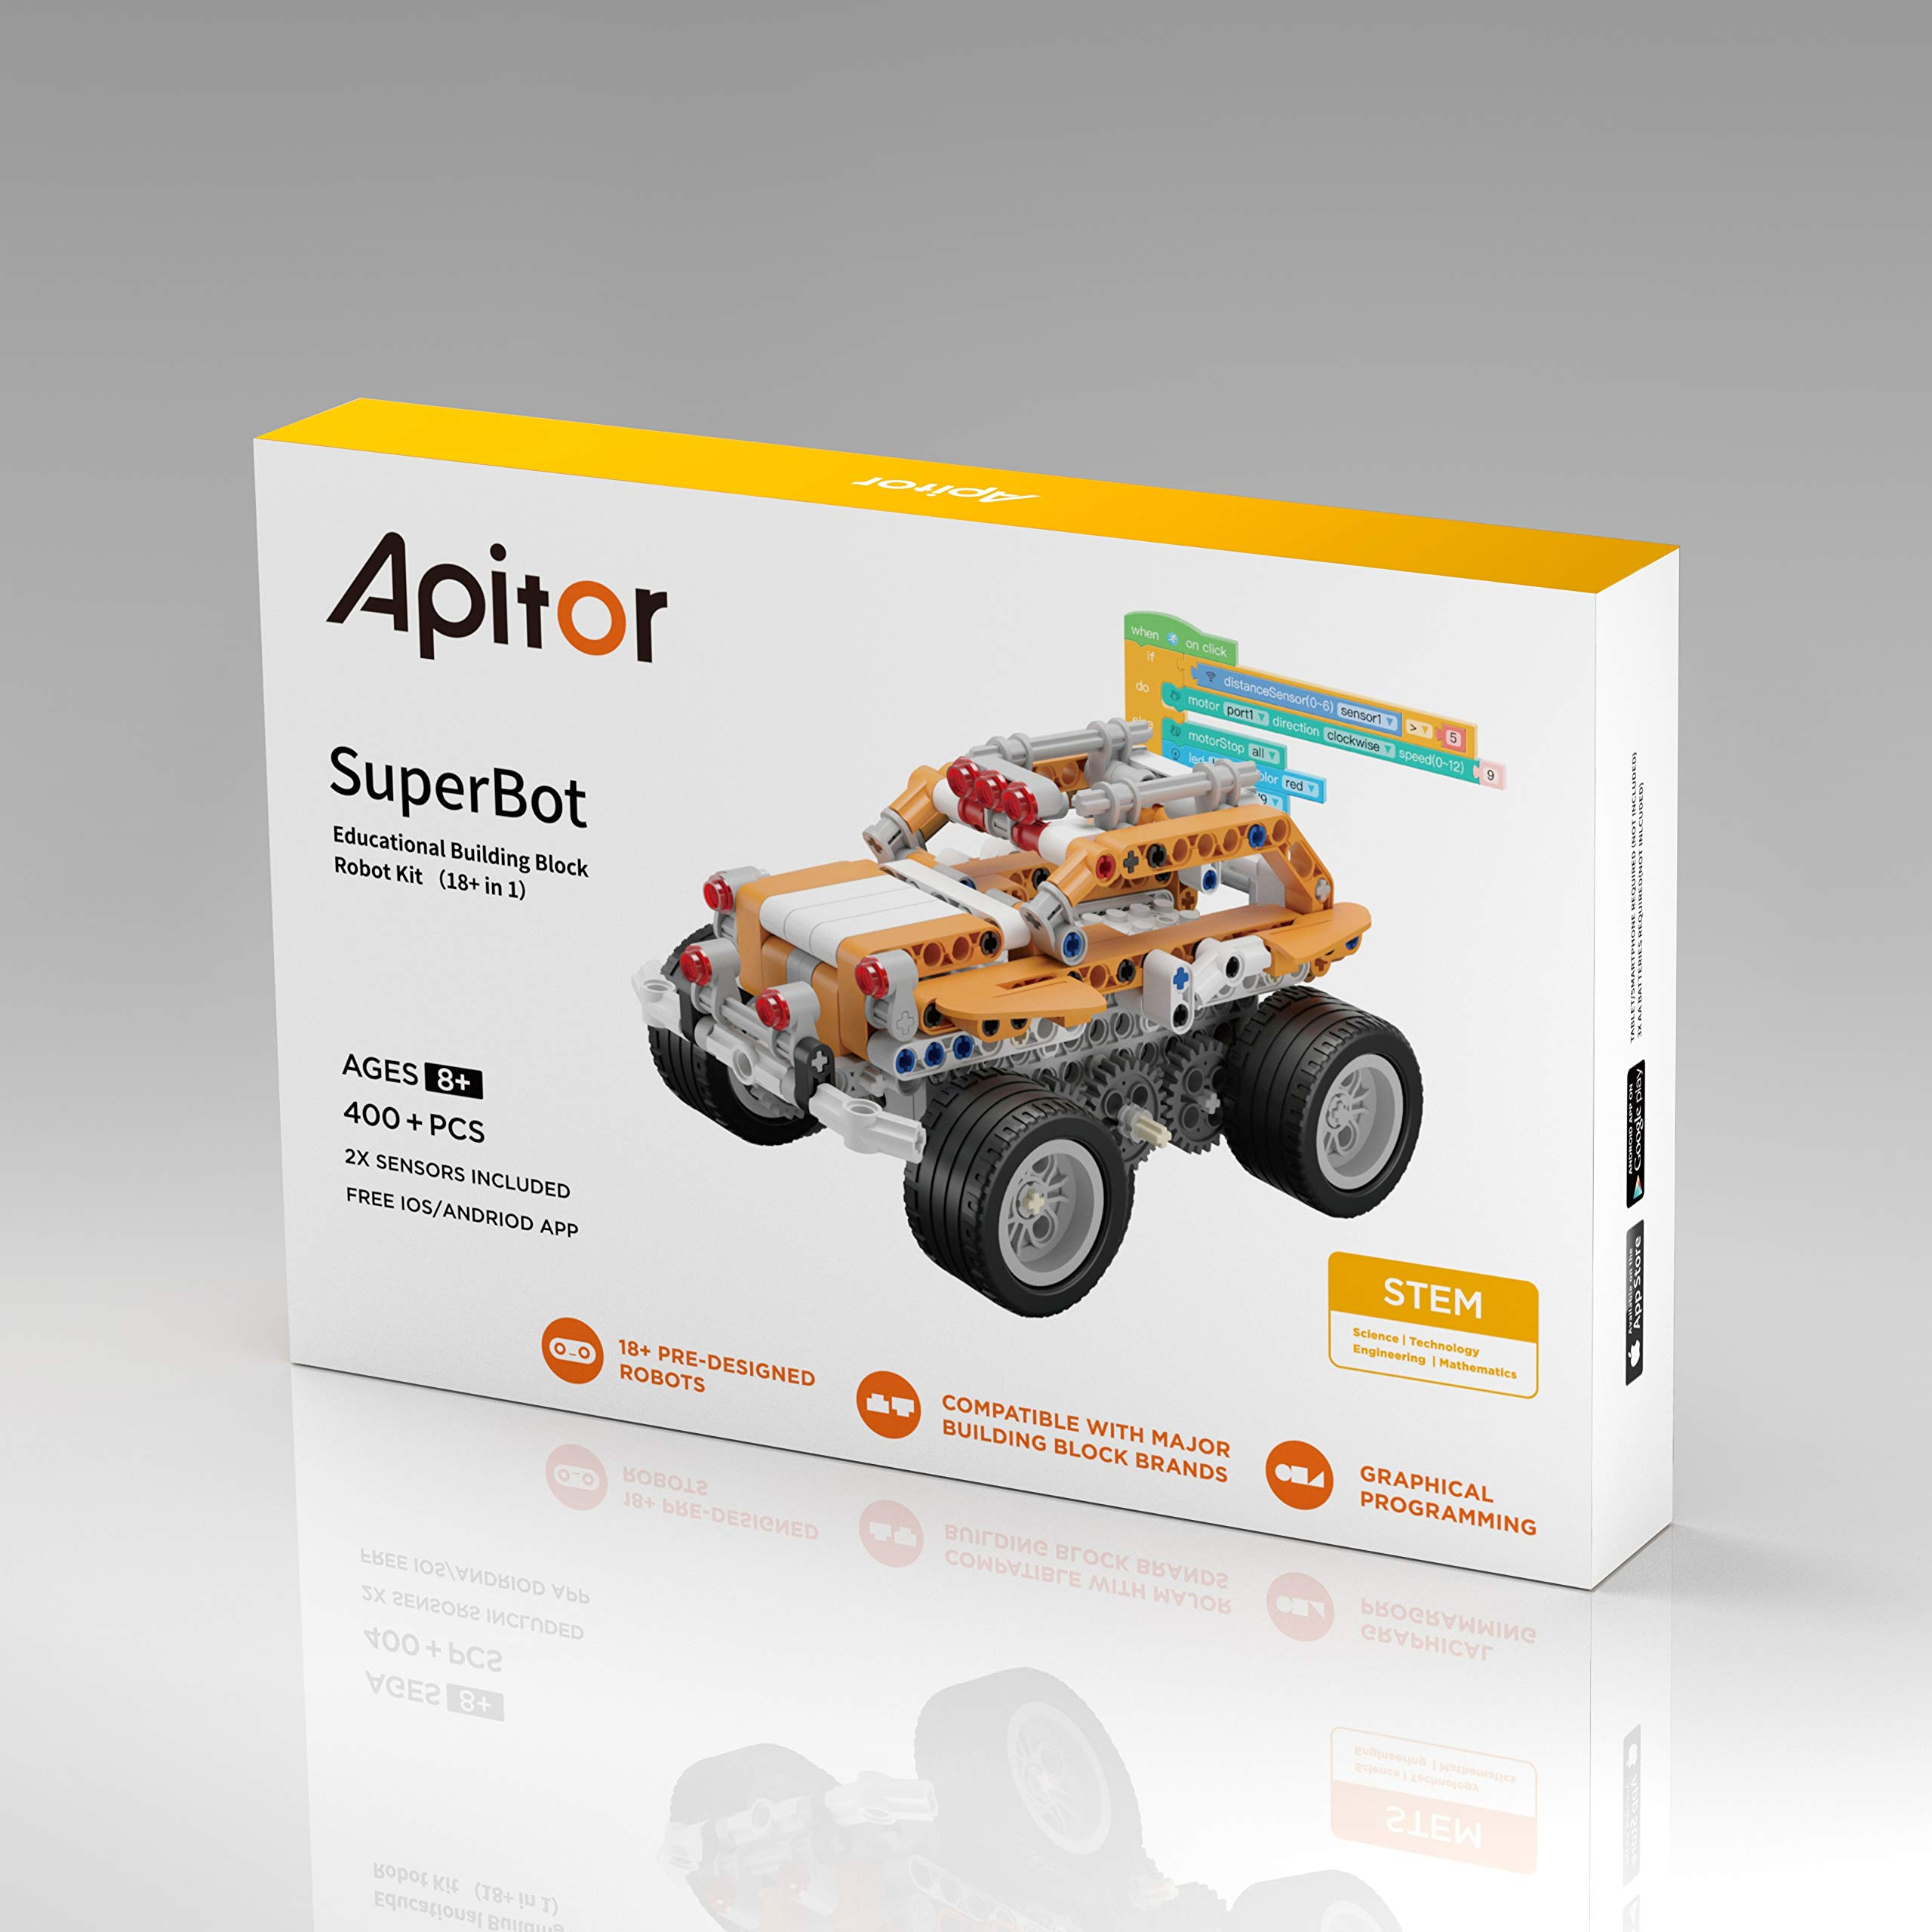 Apitor SuperBot, Educational Building Block 18 in 1 Robot Kit, APP Remote Control, STEM Coding Learning Toy, Ideal Gift for Kids 8+, Compatible with Major Building Block Toys (400+ Pieces) by Apitor Technology Co., Ltd. (Image #8)